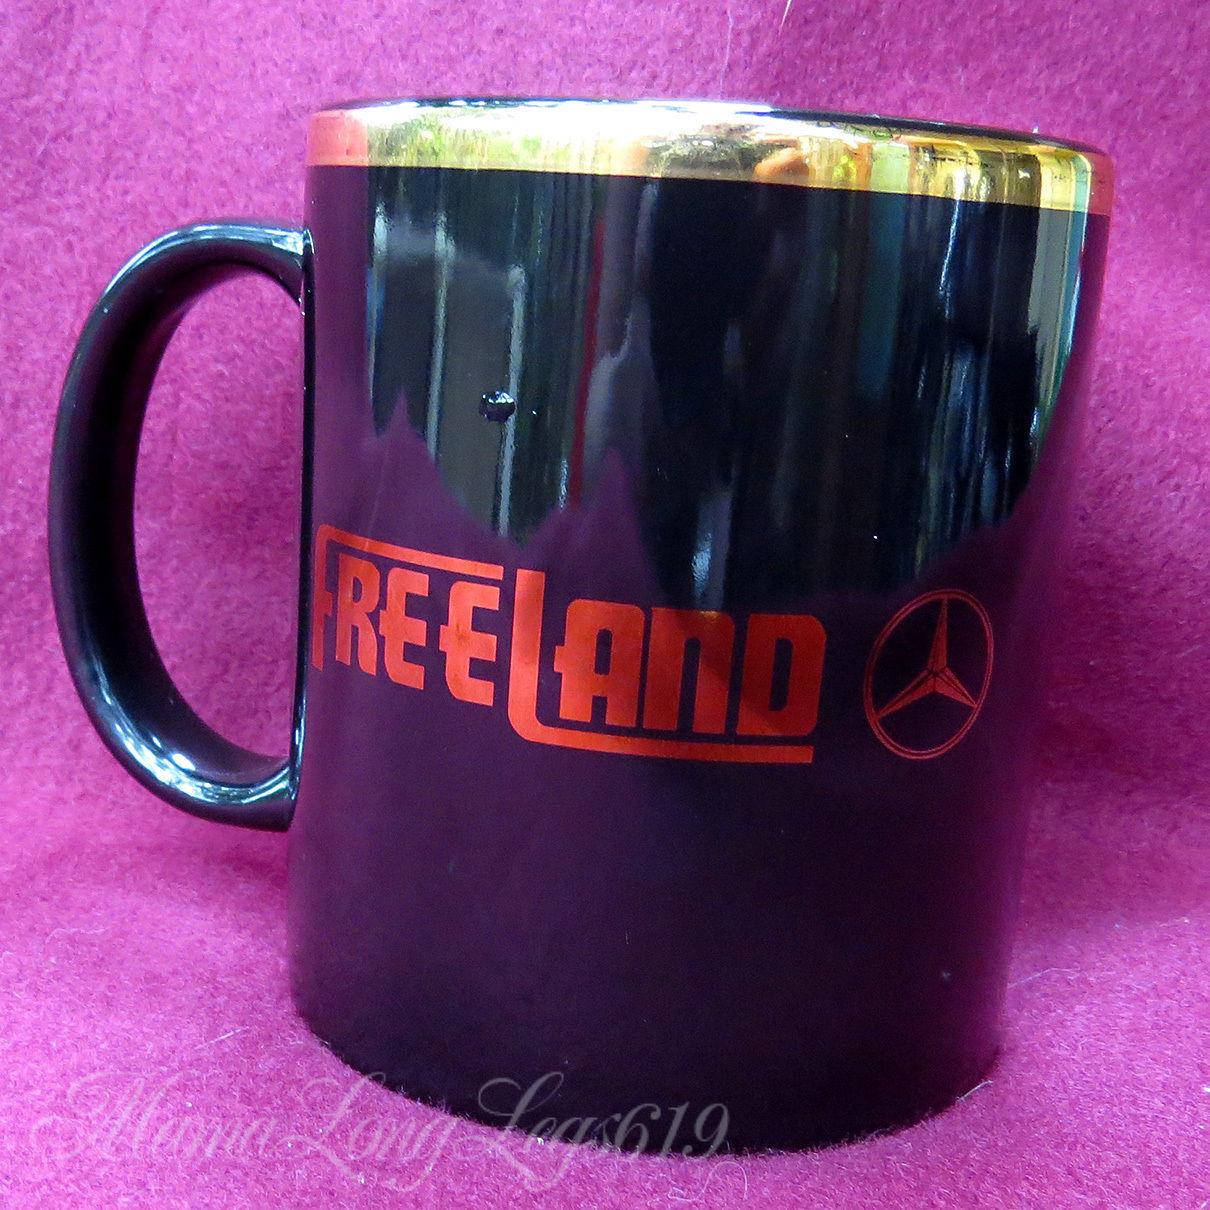 Primary image for PROMO Freeland Mercedes Dealership Coffee Mug Cup Gold Trim Cedes Emblem